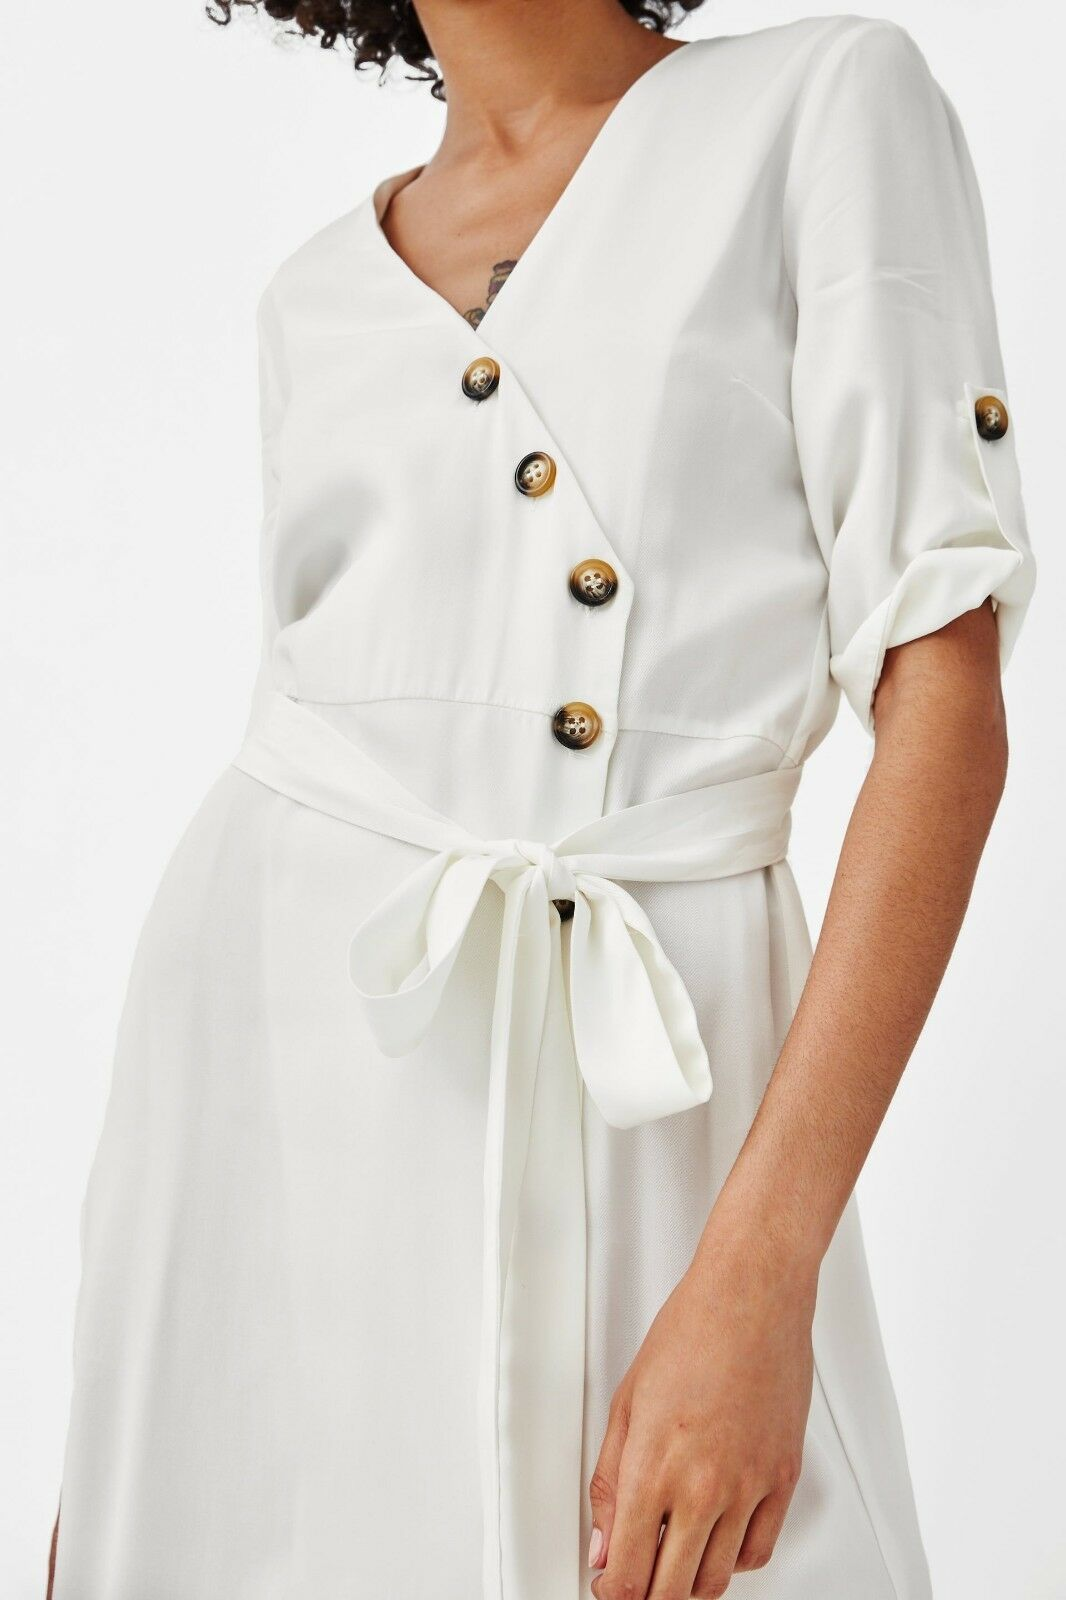 Zara lyocell lyocell lyocell midikleid abito Bottoni MIDI BELTED shirt dress with buttons Dimensione L c222be